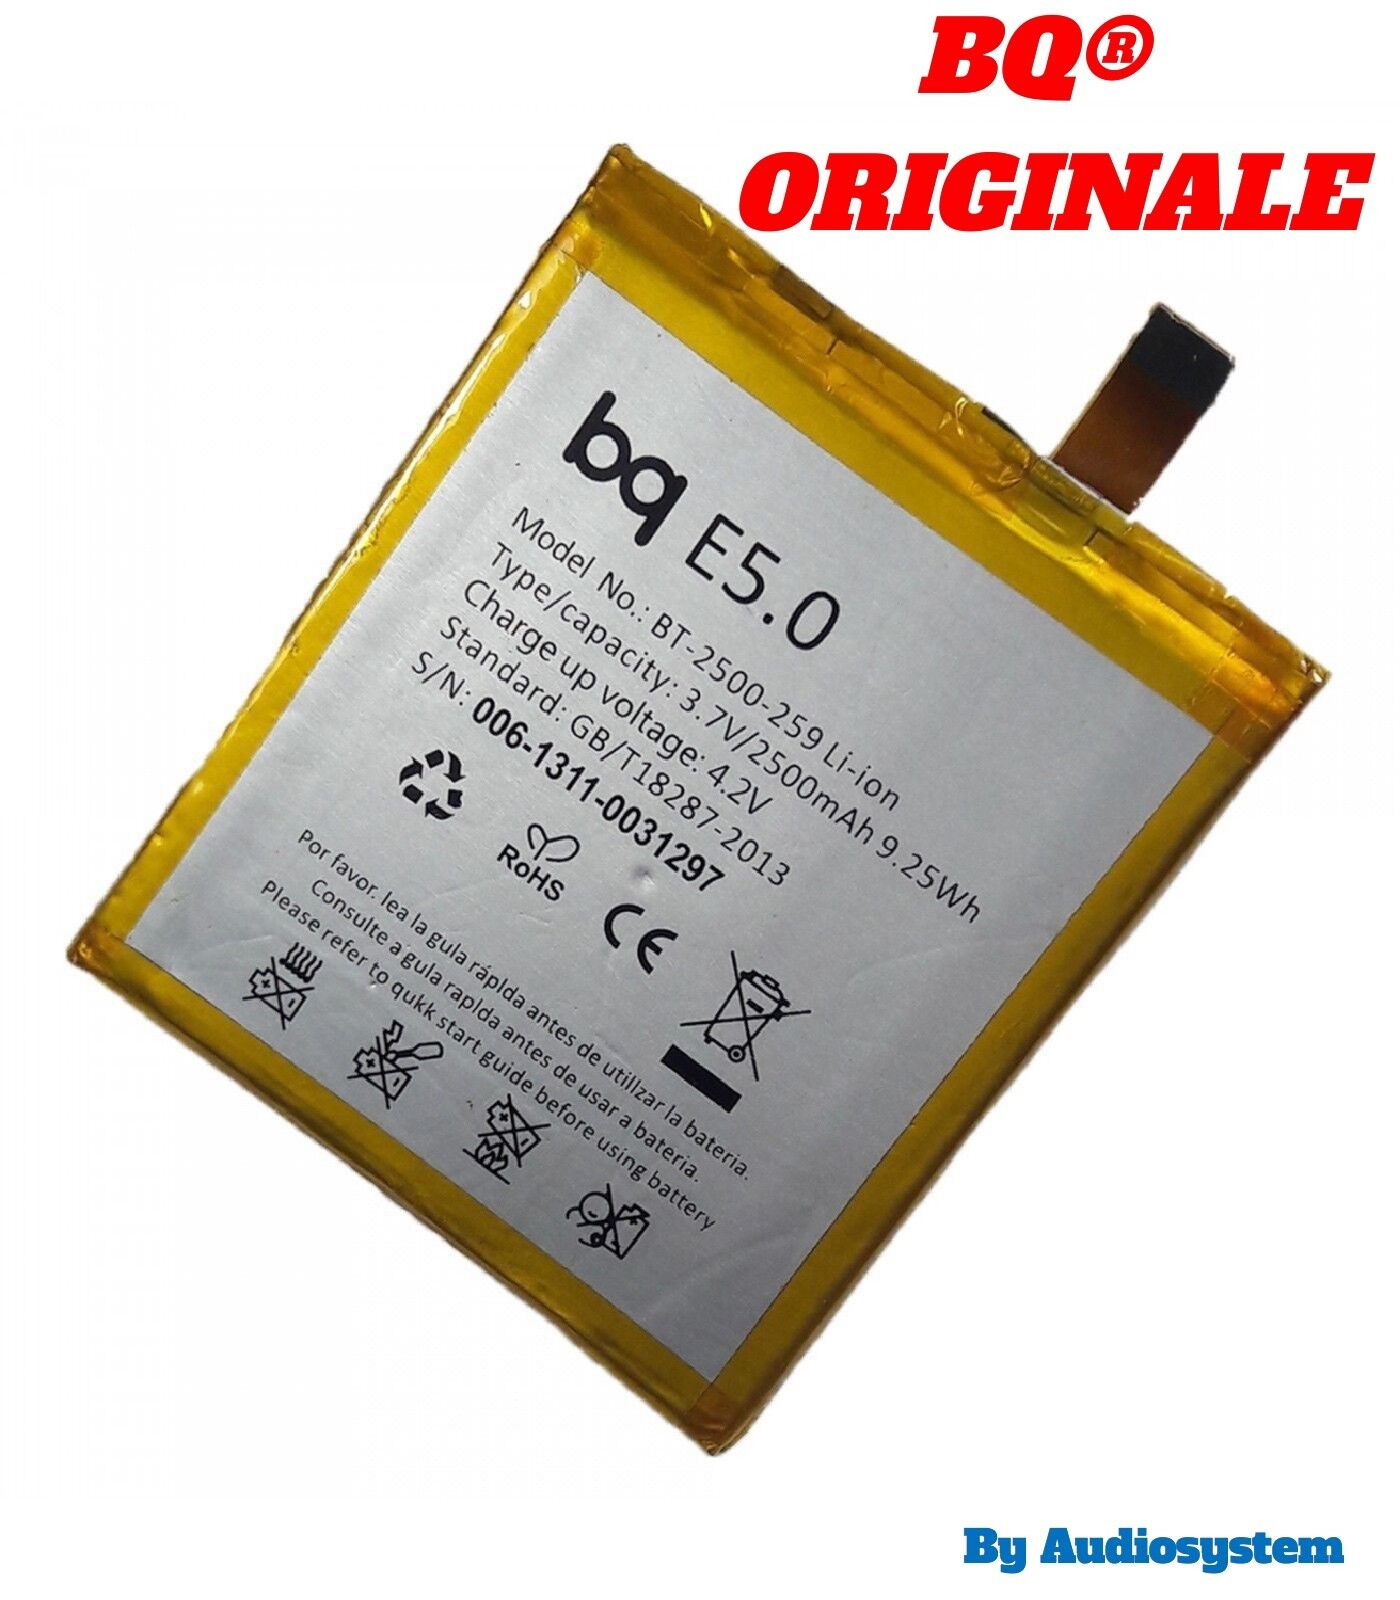 BATTERIA ORIGINALE BQ PER AQUARIS E5 HD B24 GYA1427 2500MAH BT-2500-259 E5.0